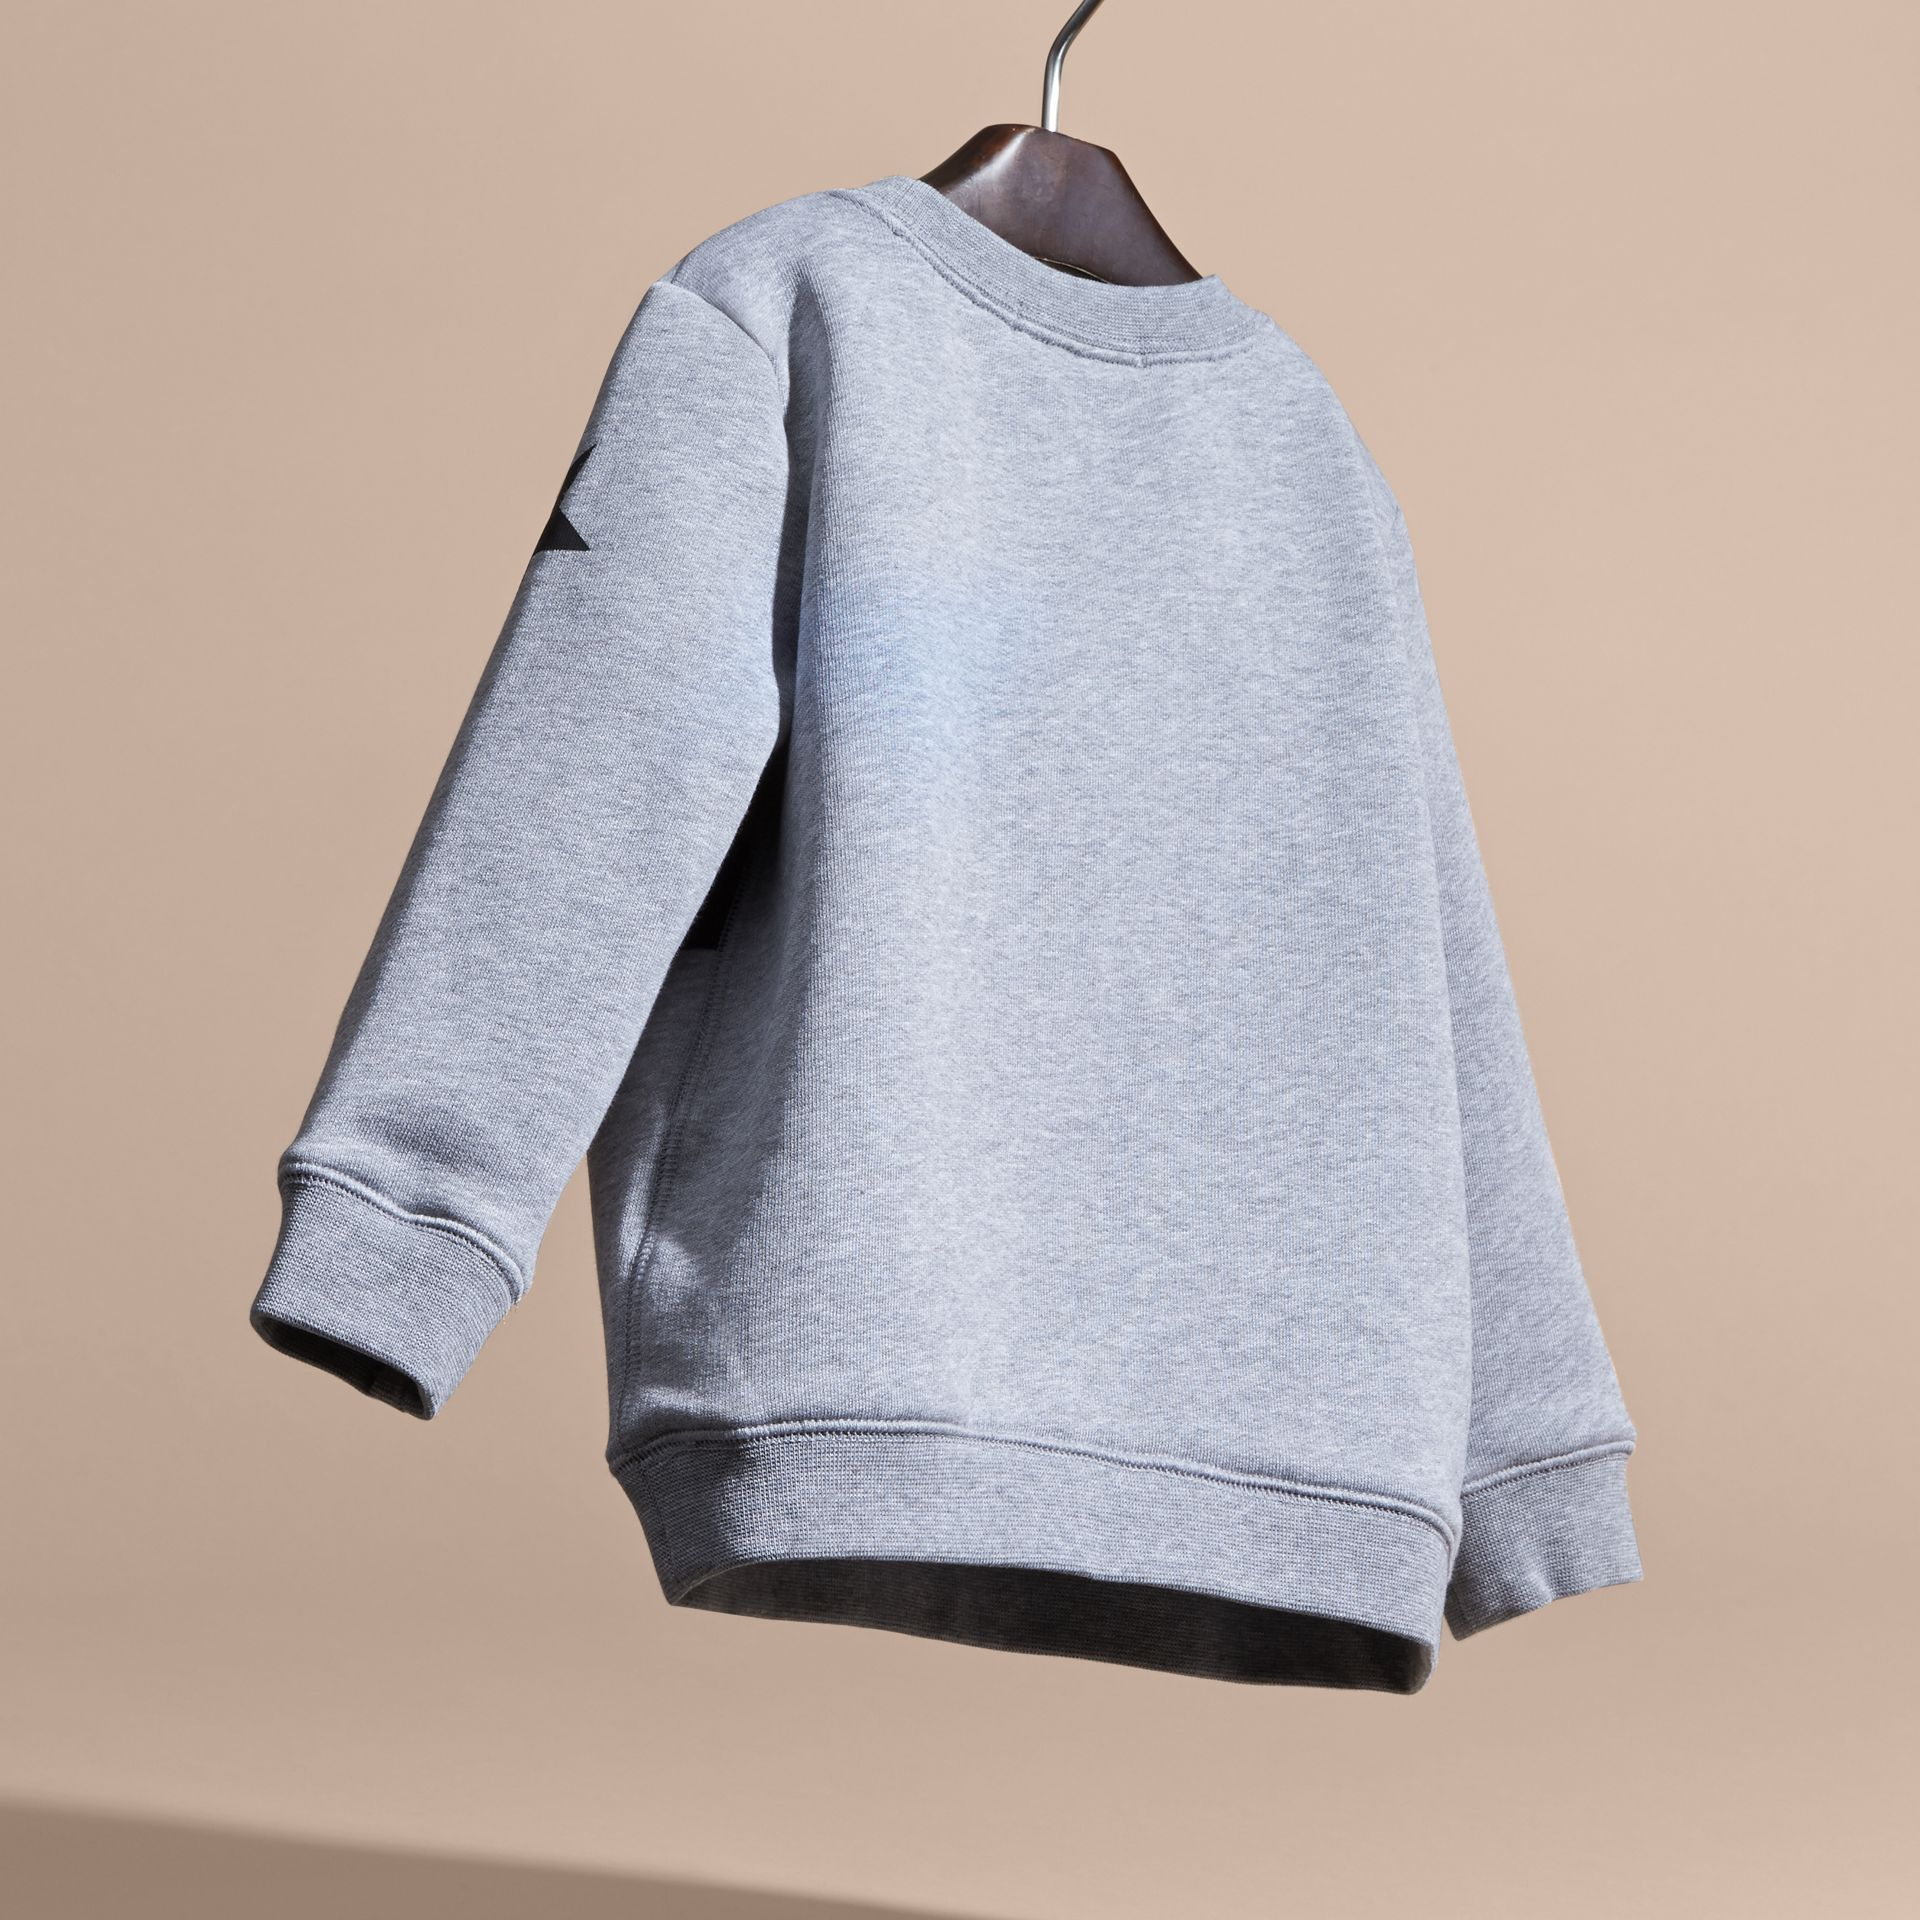 Mid grey melange Appliquéd Weather Graphic Jersey Sweatshirt - gallery image 4